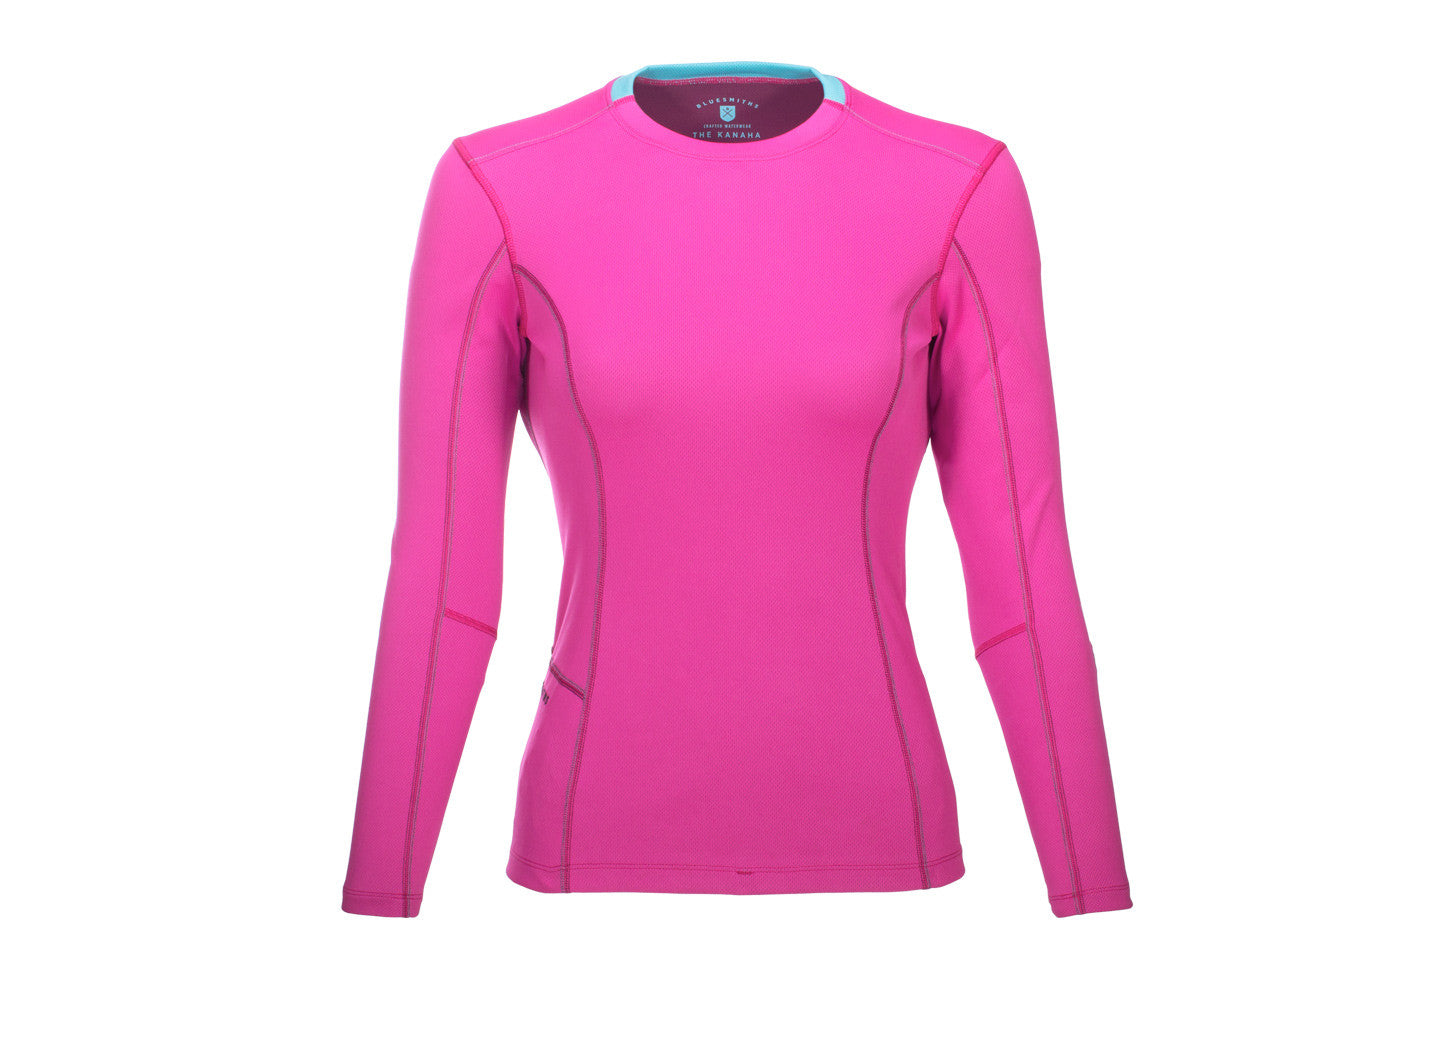 58c270793 ... World's Finest · The Kanaha Hydrophobic Shirt for Women in Hibiscus  Pink (Blue Atoll) - The World's ...